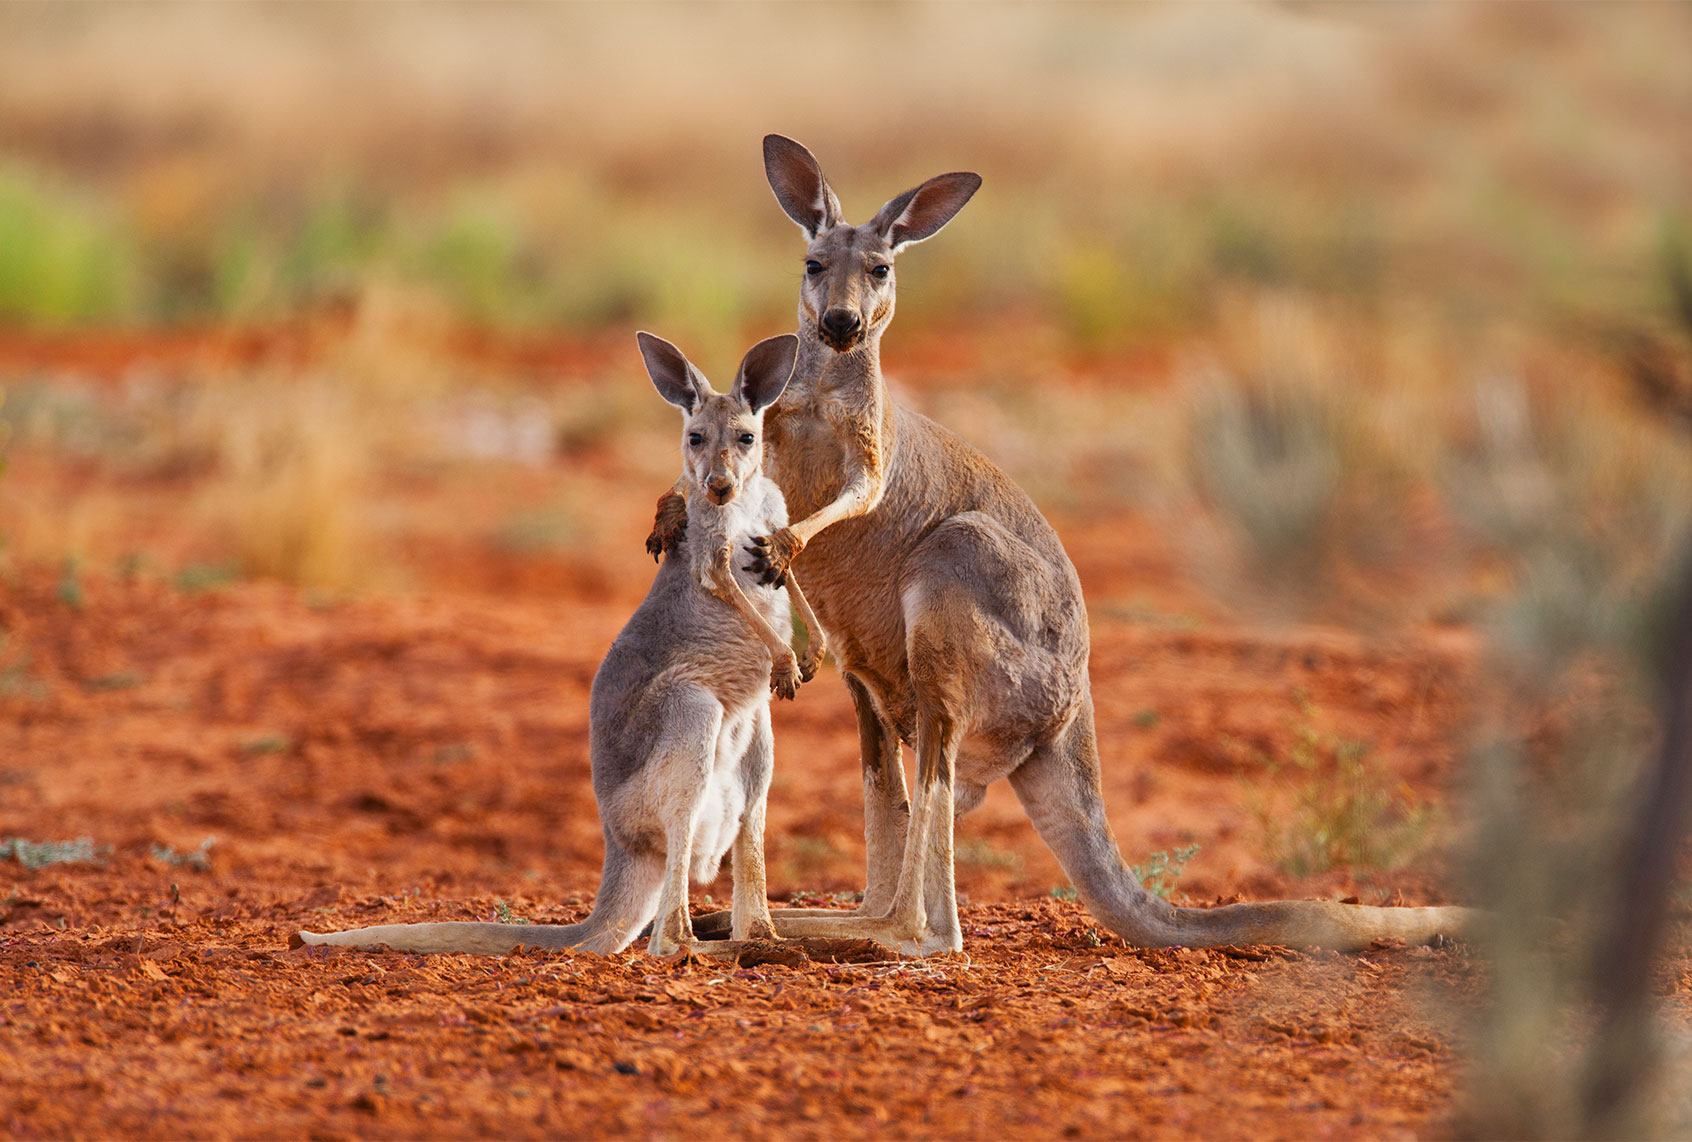 Kangaroos, an Australian icon, are being butchered to feed the pet food industry